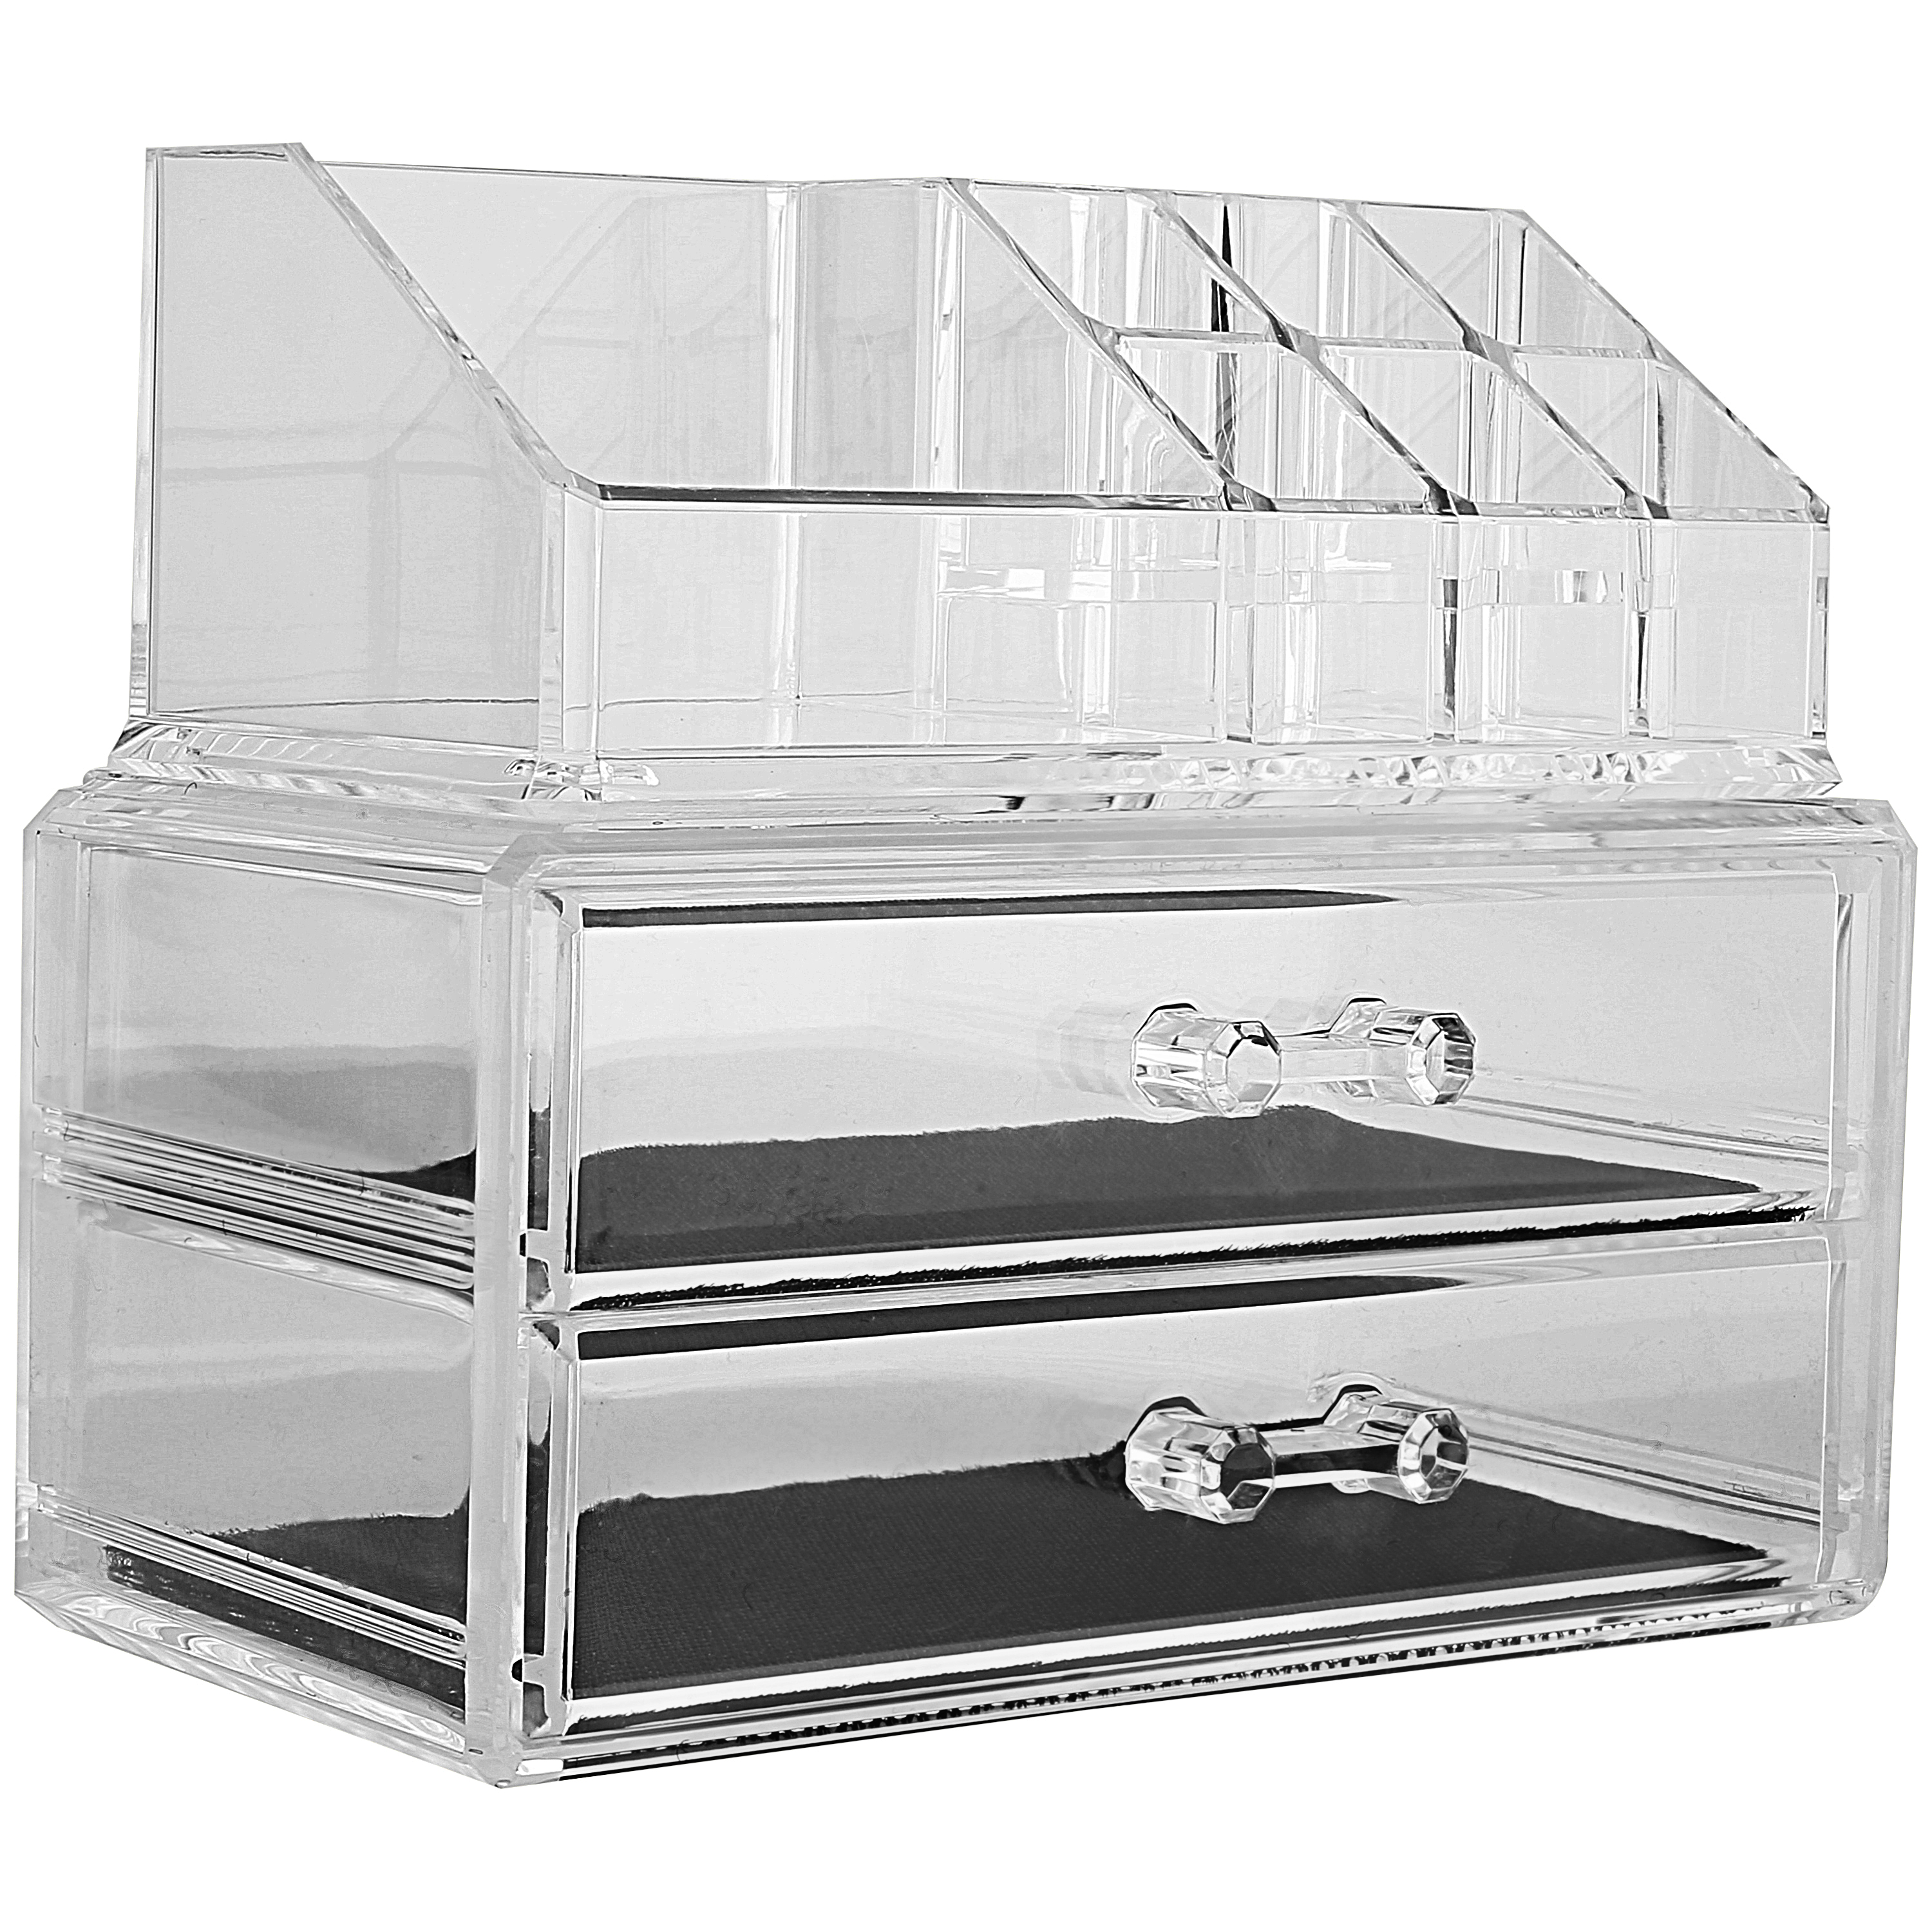 Acrylic Makeup Cosmetic Jewelry Organizer Storage Display Box With 2 Set Of Drawers My Charity Boxes